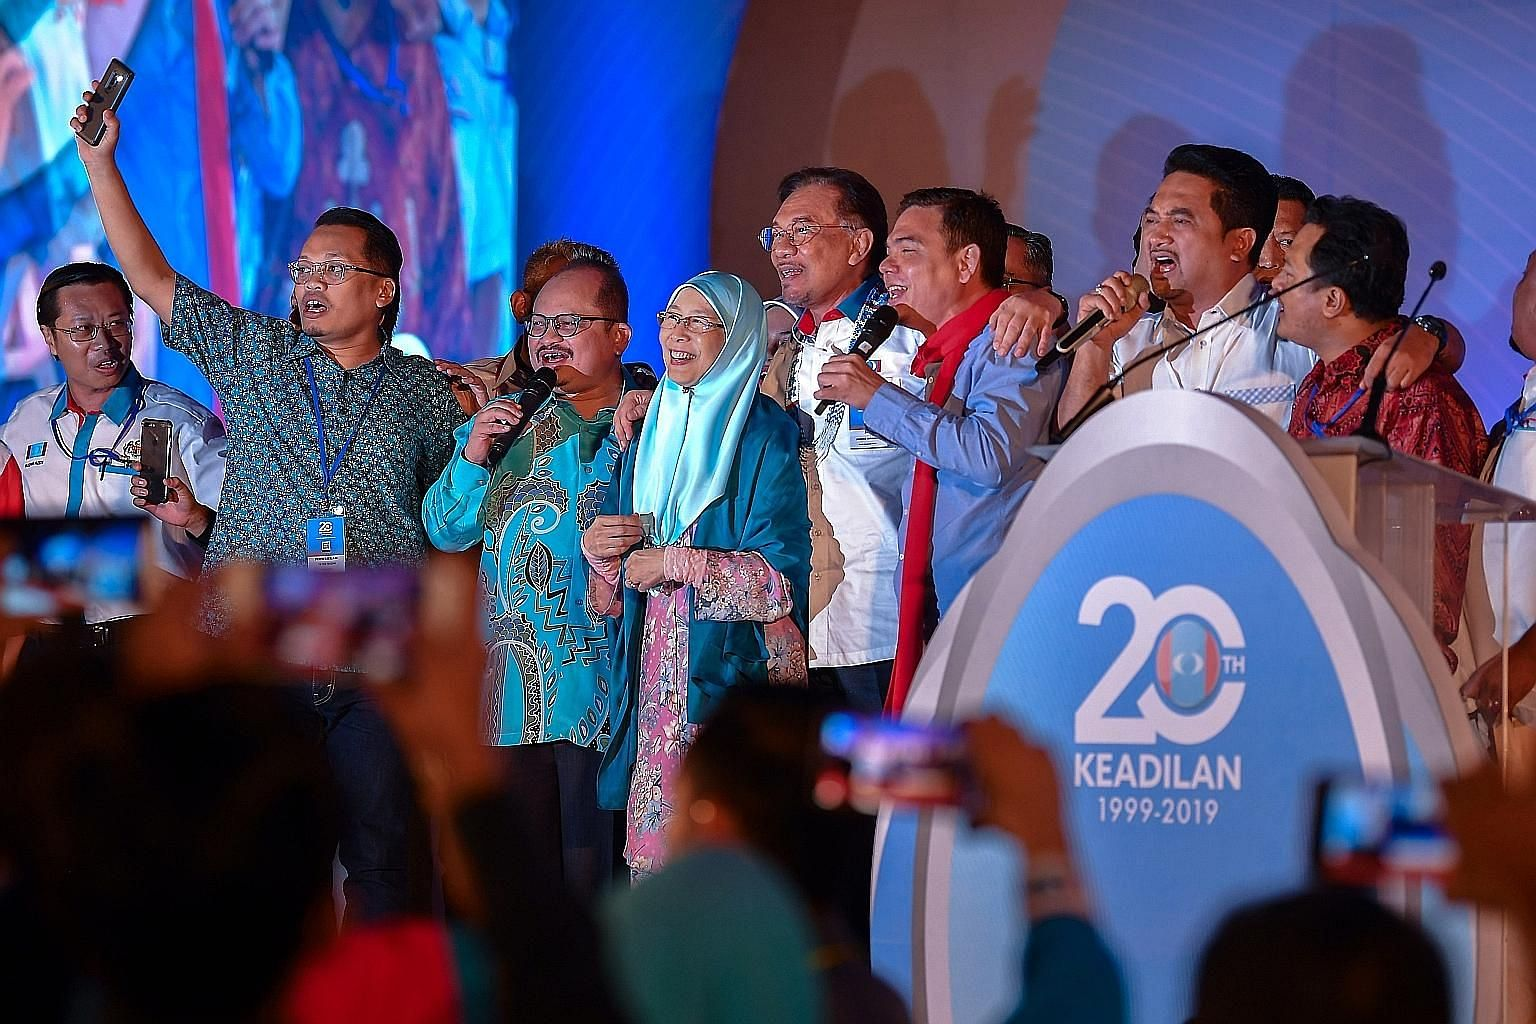 Parti Keadilan Rakyat president Anwar Ibrahim (centre, in white) with his faction's leadership team singing at the end of the party's annual congress in Melaka state. With him is his wife and chairman of PKR's board of advisers, Datuk Seri Wan Azizah